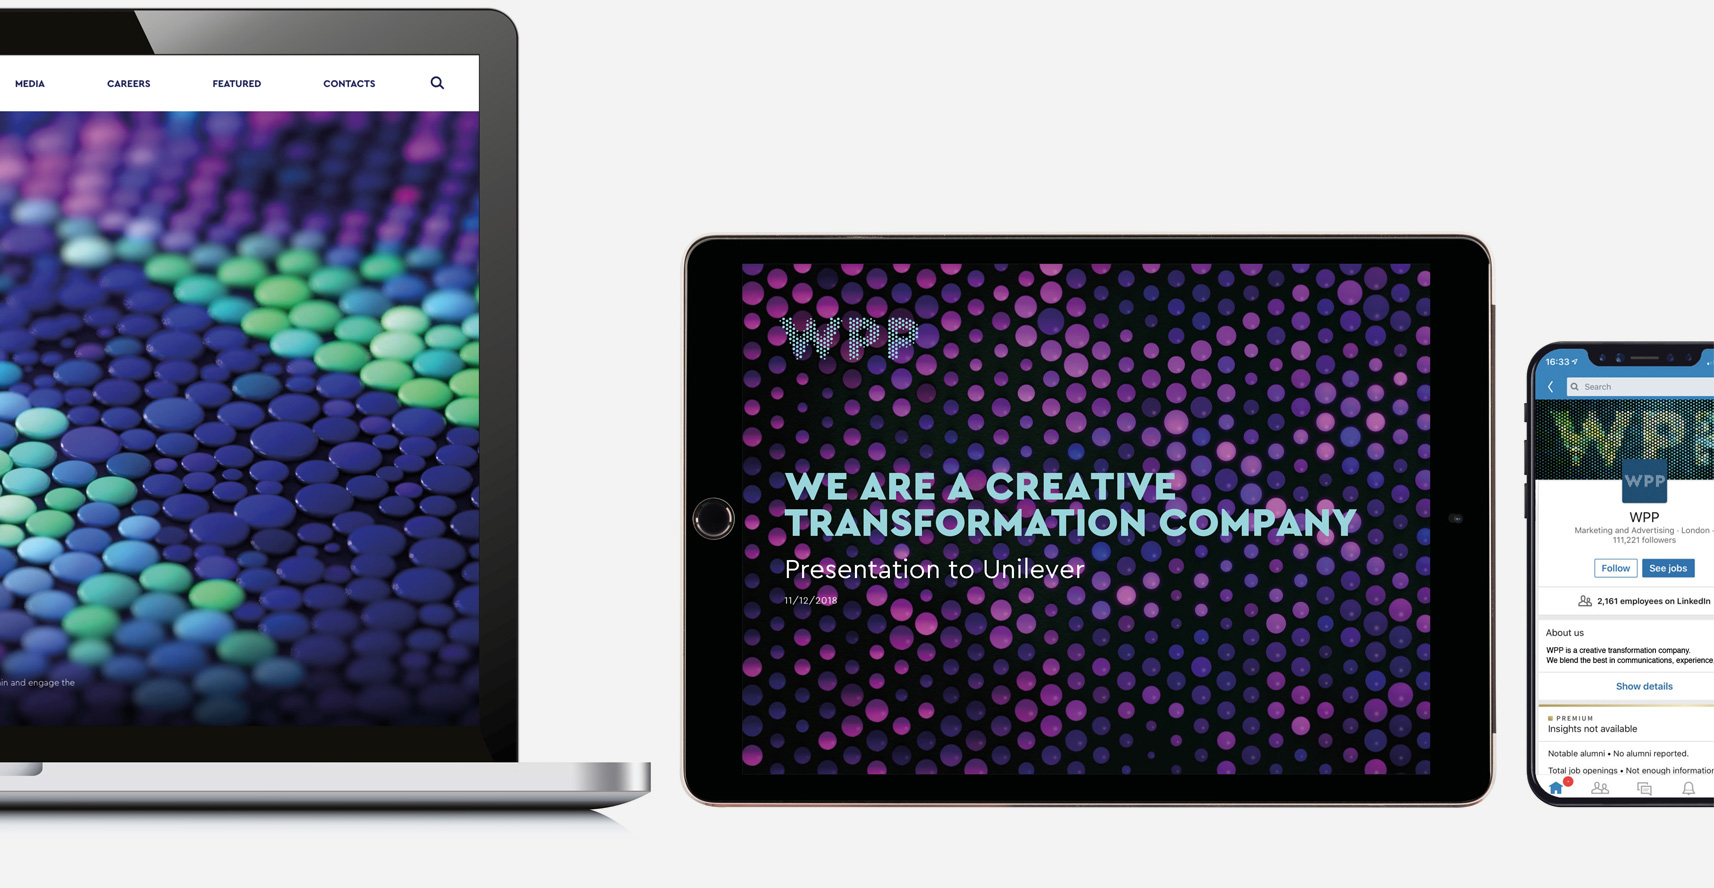 New Logo and Identity for WPP by Landor and Superunion